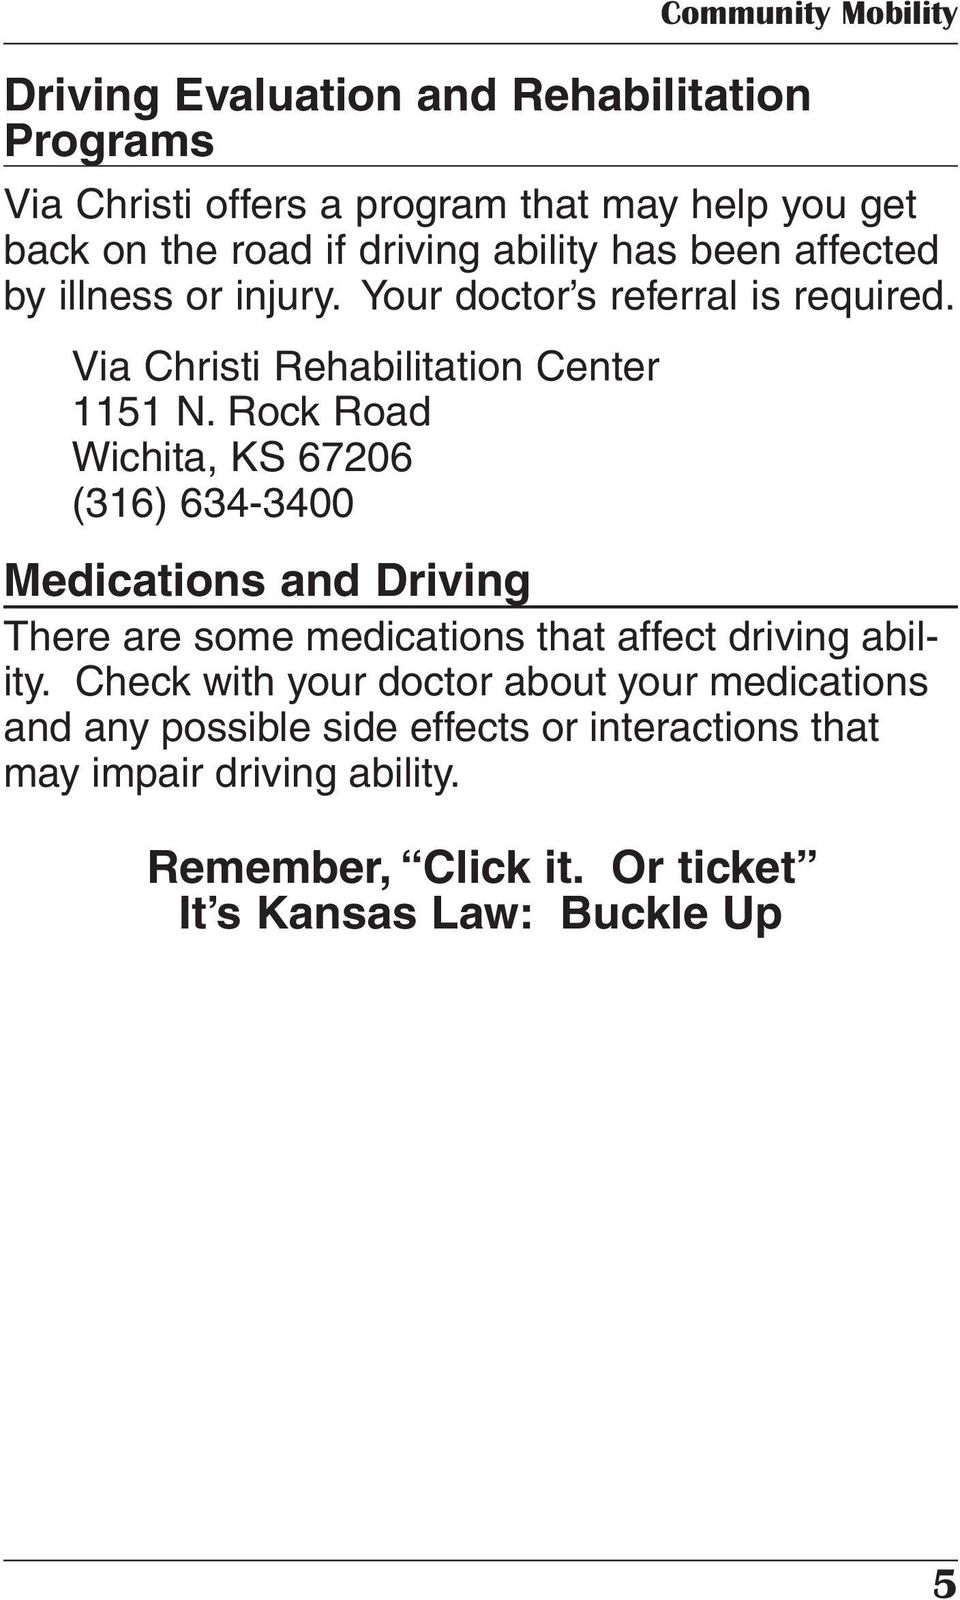 Rock Road Wichita, KS 67206 (316) 634-3400 Community Mobility Medications and Driving There are some medications that affect driving ability.